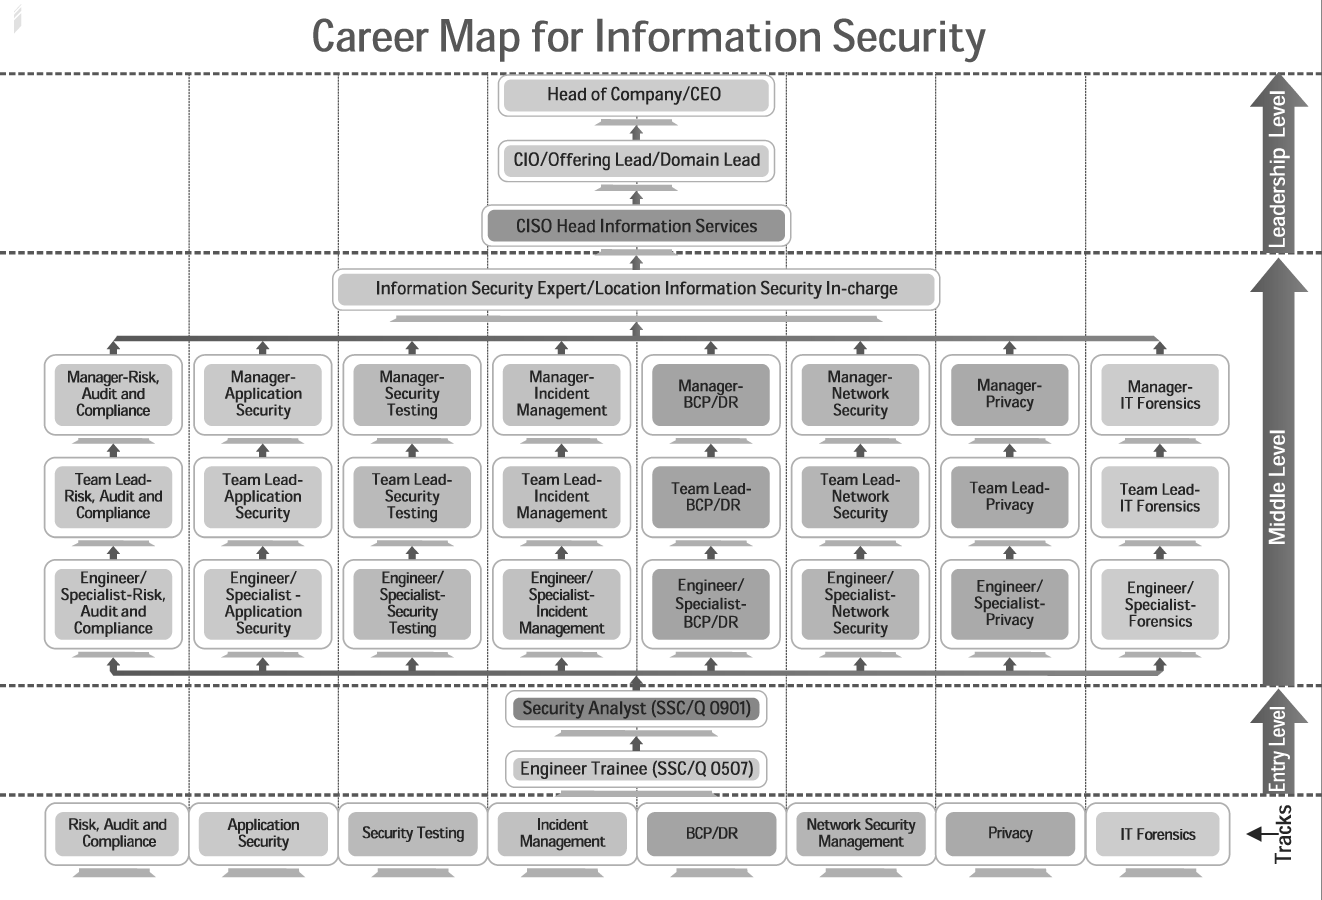 Job Role: NASSCOM Certified Security Analyst Qualification Pack: SSC/Q0901 Duration: 400 hrs Delivery: 100% Instructor Led Key Topics Information Security Management Fundamentals of Information Security Data Leakage Information Security Policies, Procedures and Audits Information Security Management - Roles & Responsibilities Self and work Management Team Work and Communication Managing Health and Safety Data and Information Management Learning and Self-Development